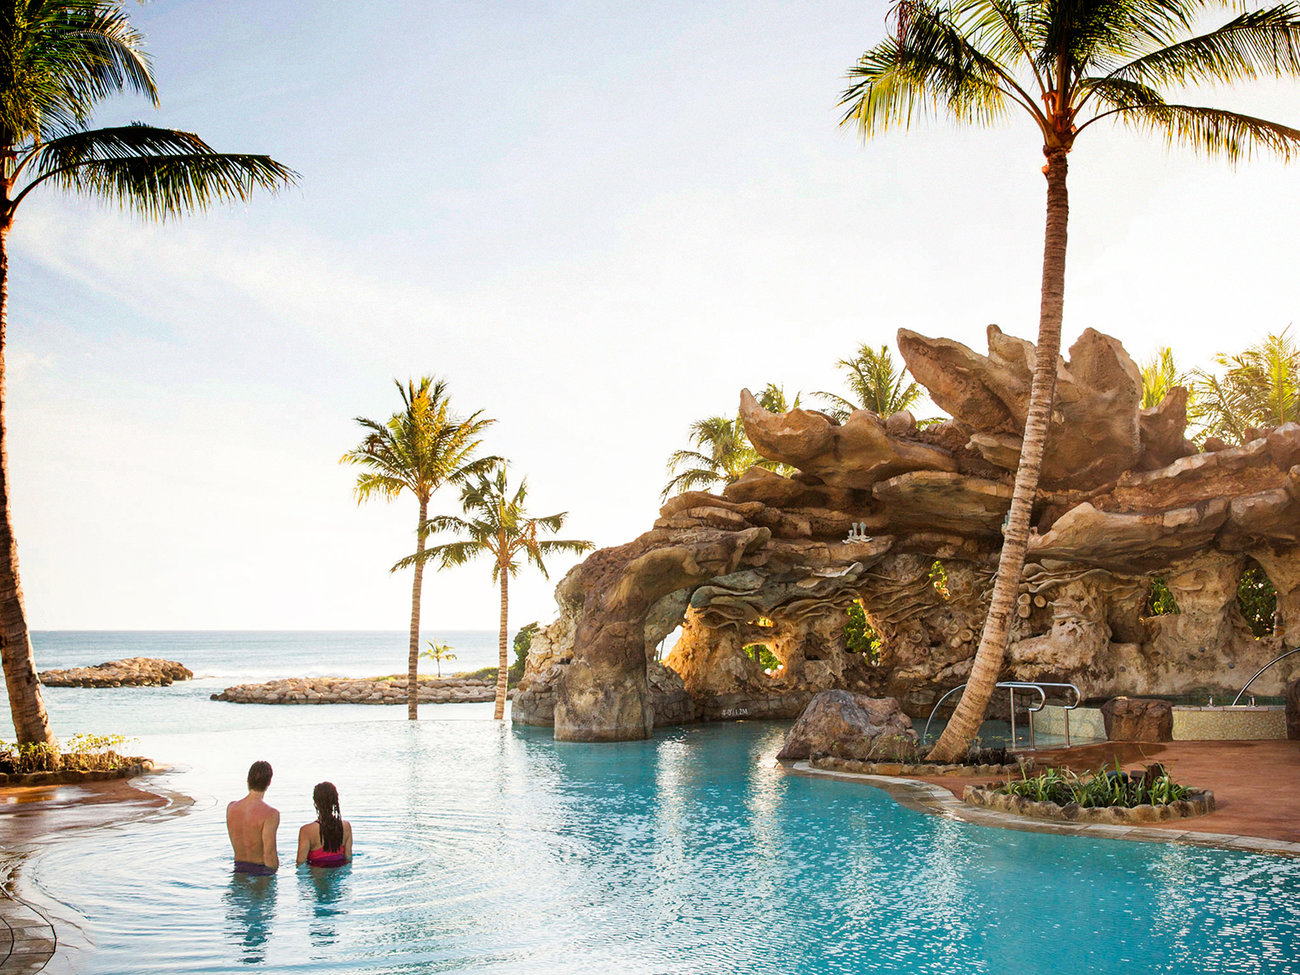 Aulani, A Disney Resort Hotel in Oahu